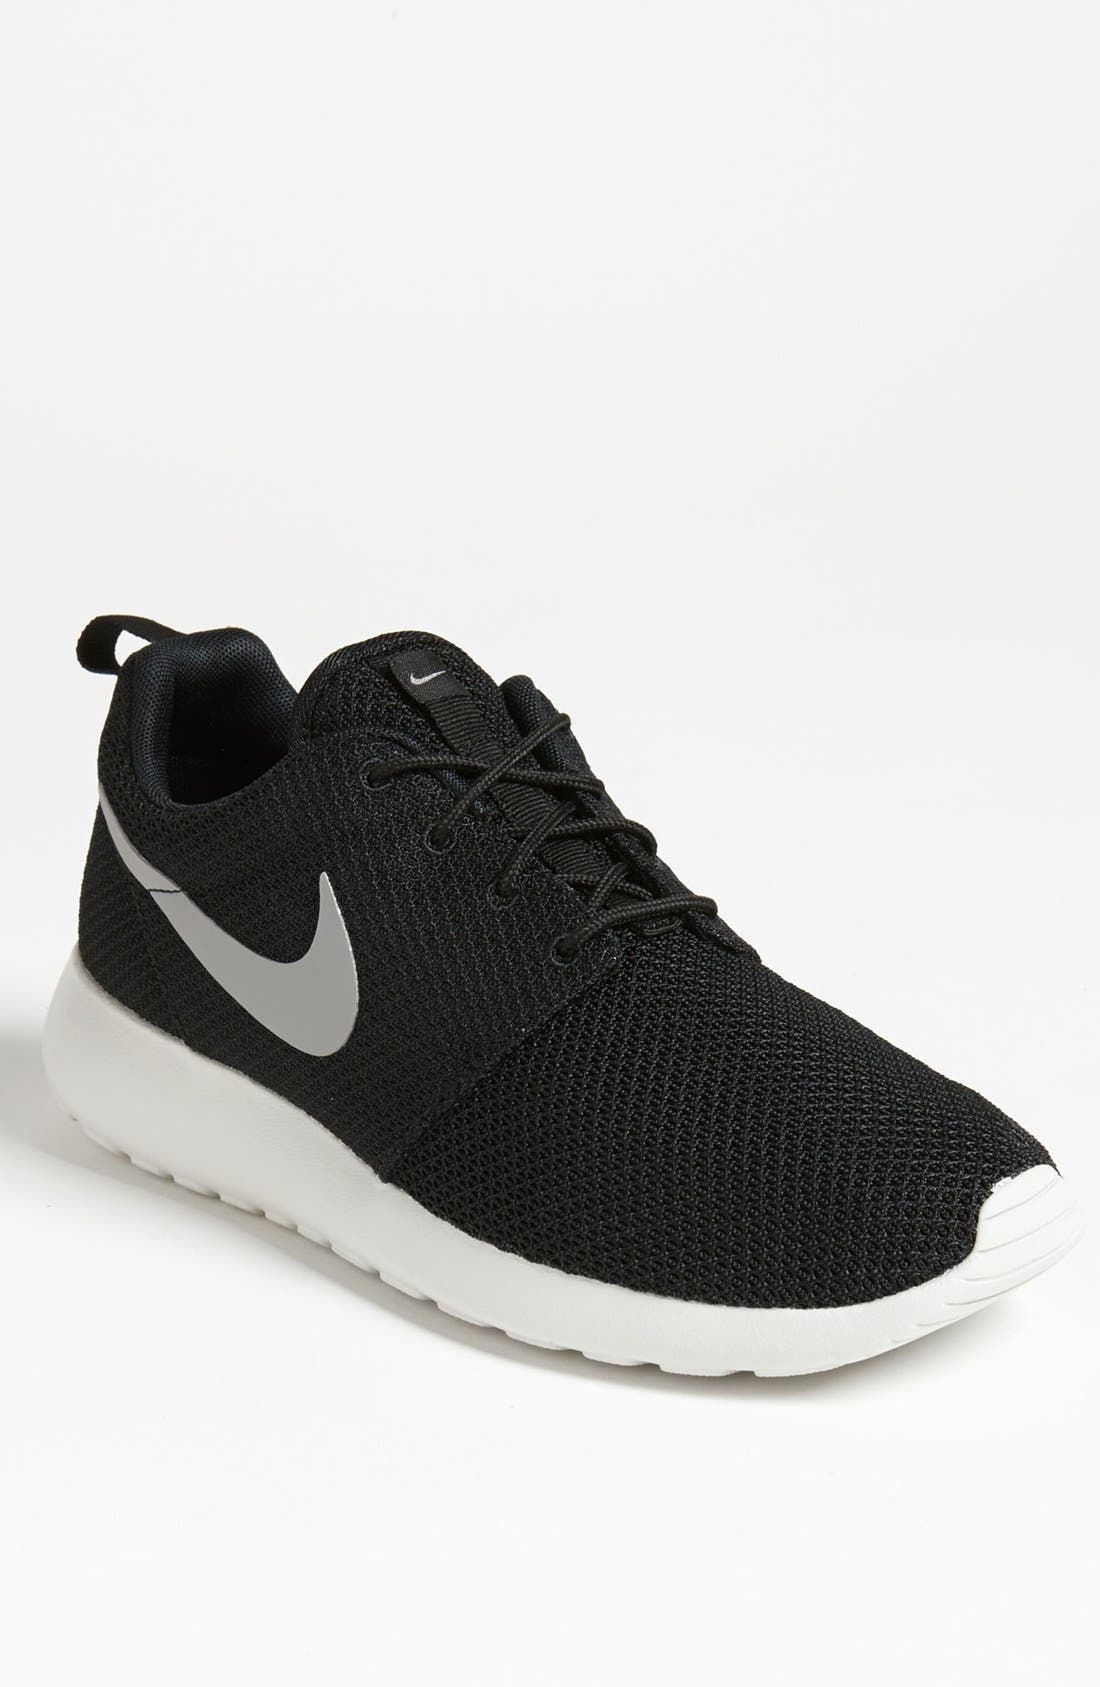 'Roshe Run' Sneaker,                             Main thumbnail 1, color,                             004